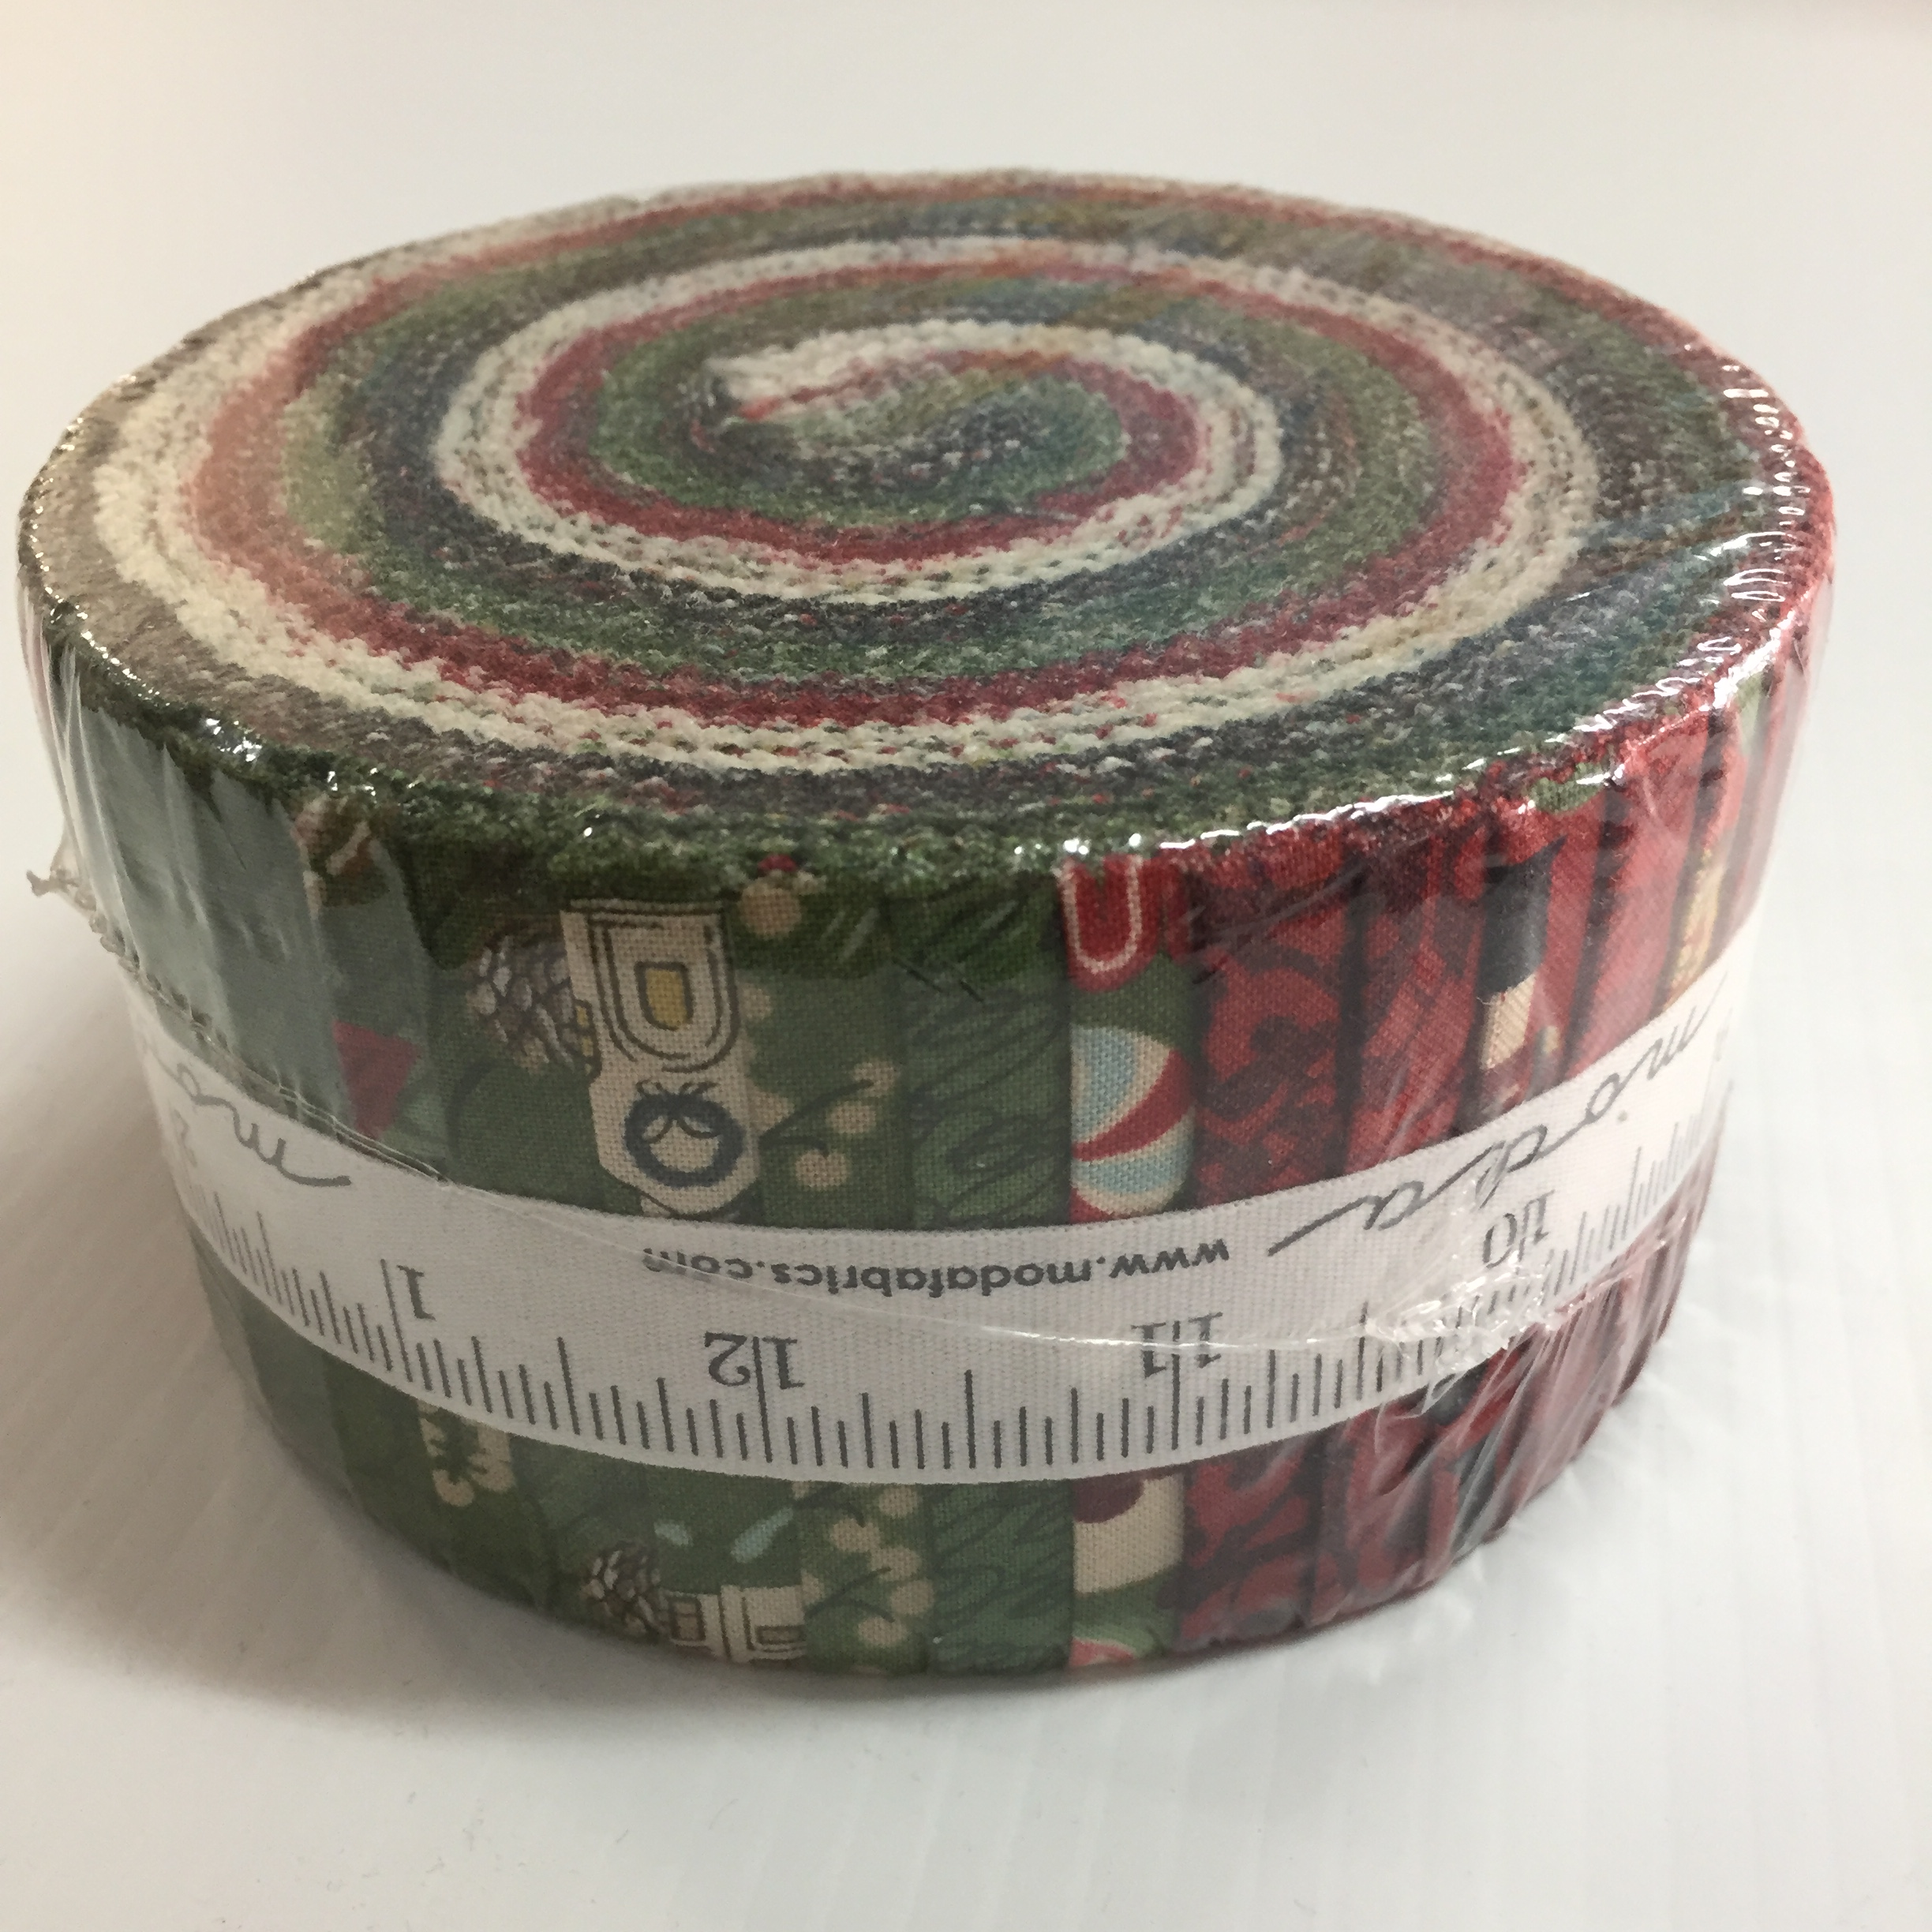 Winter Village Jelly Roll